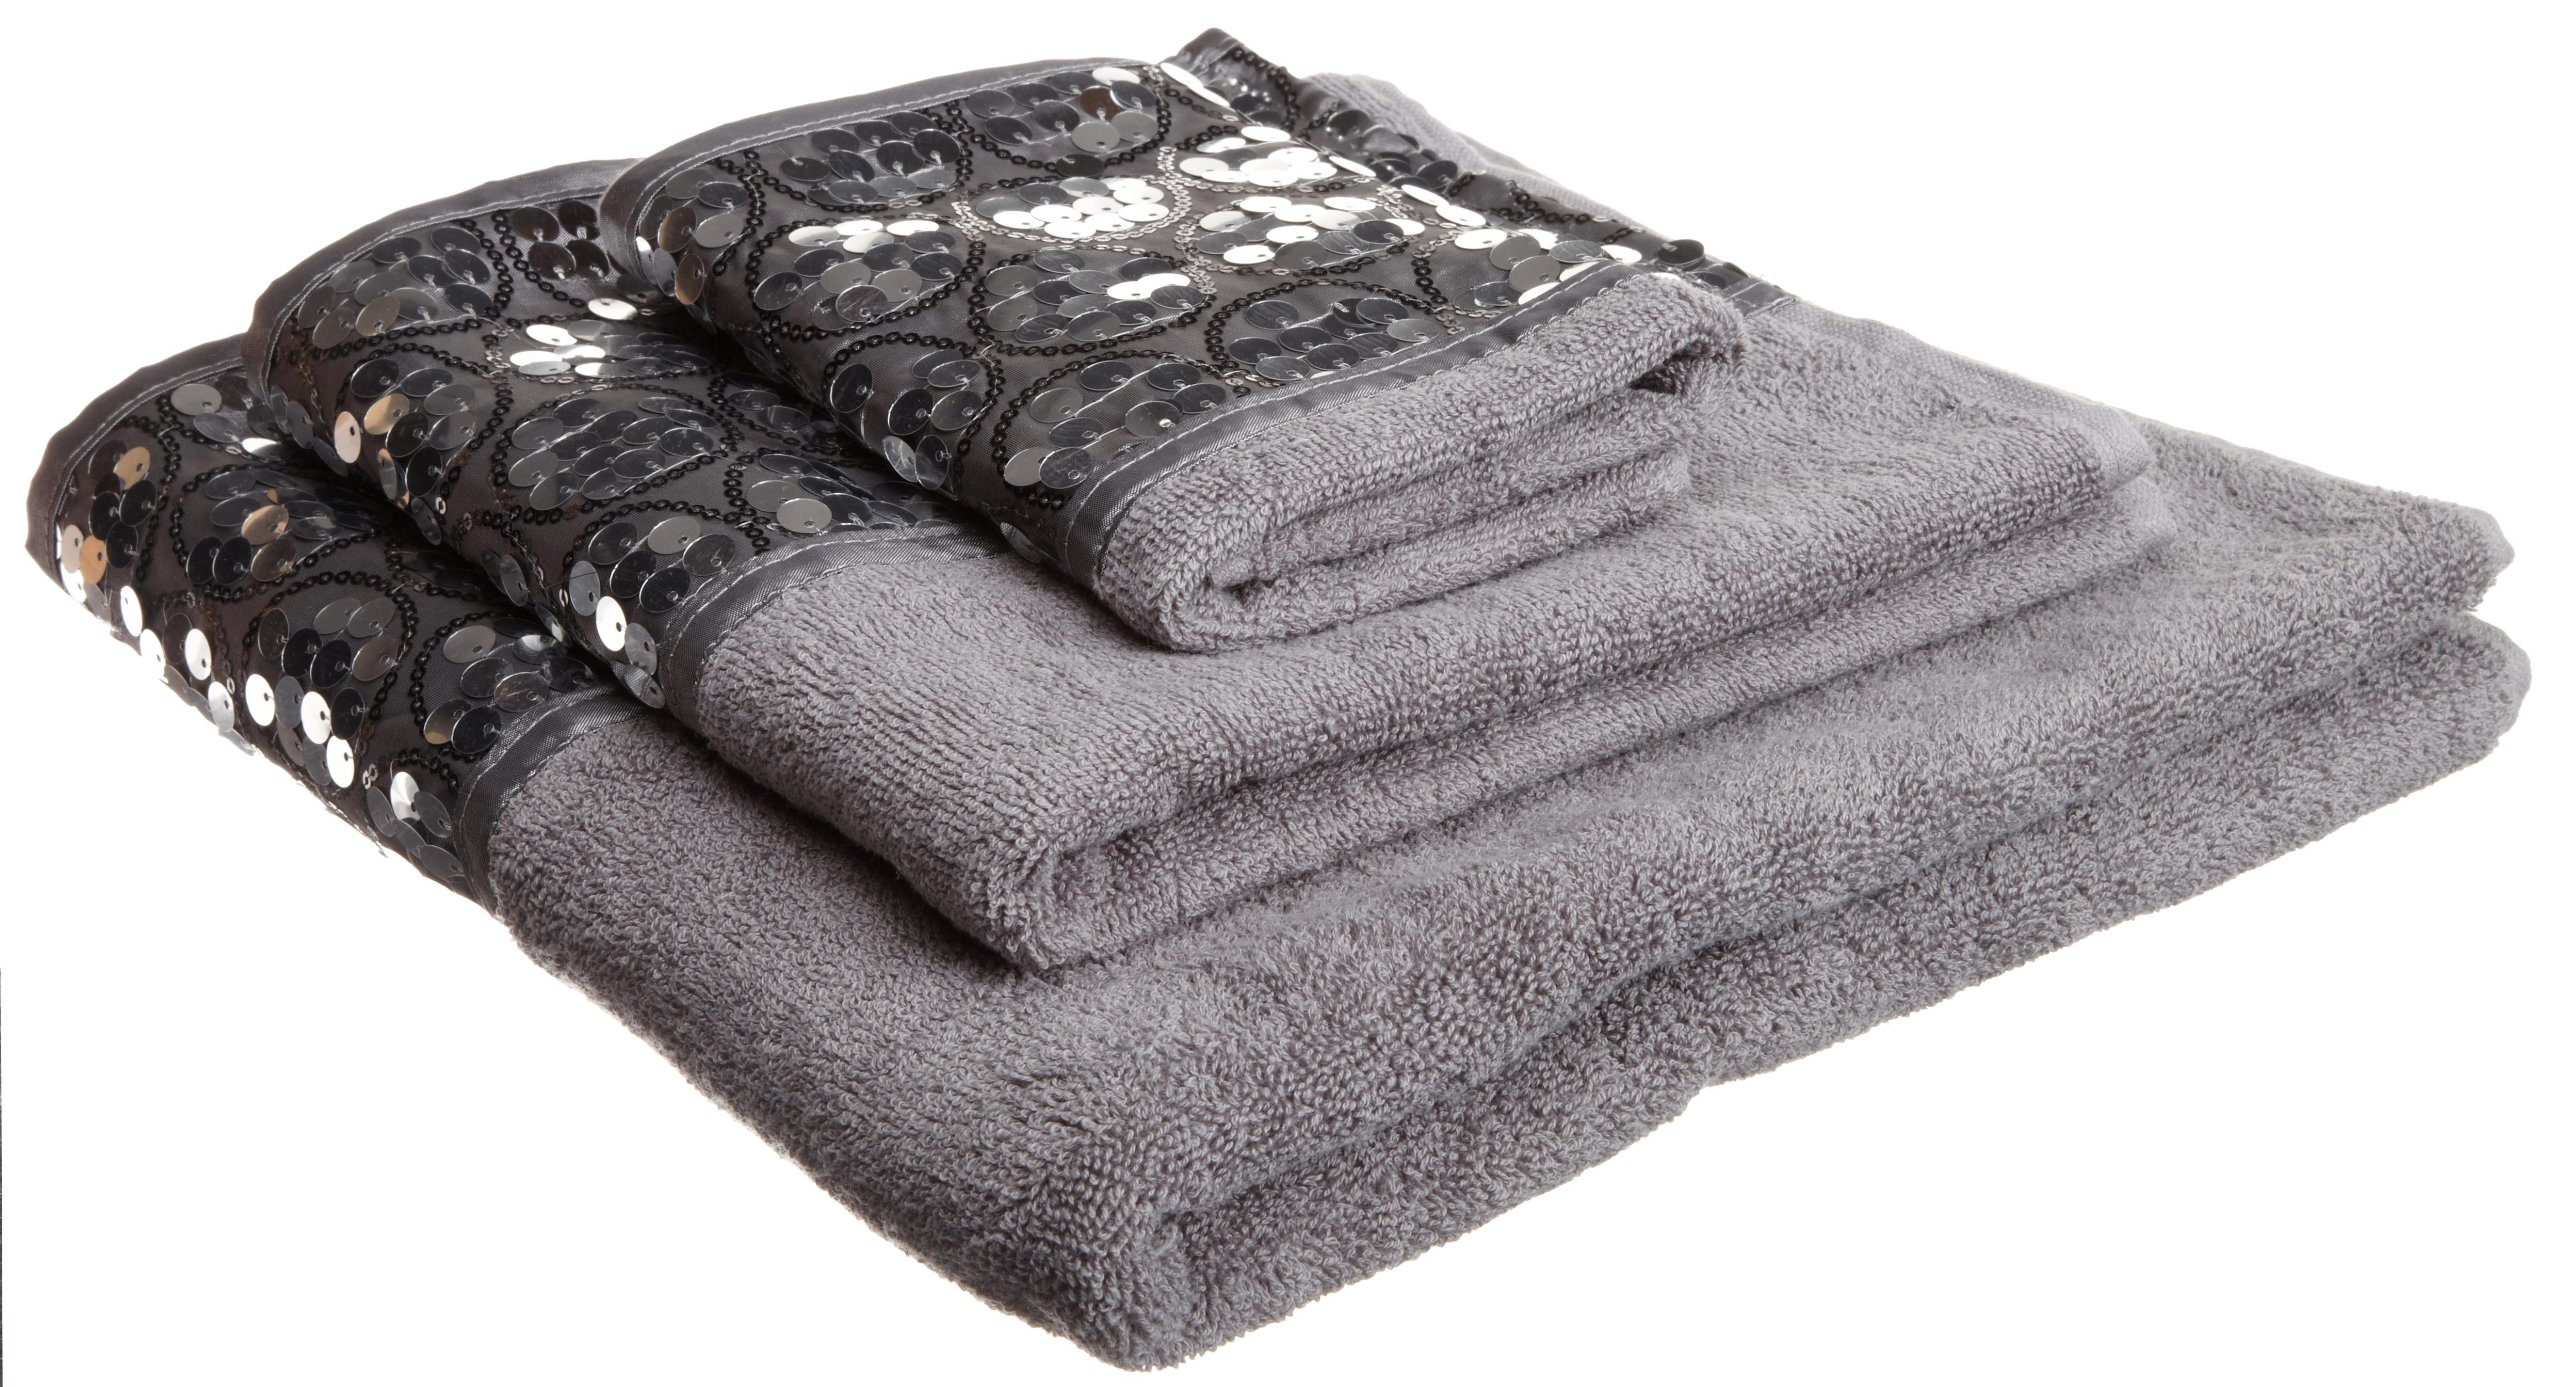 Popular Bath ''Sinatra Silver 3-Piece Towel Set